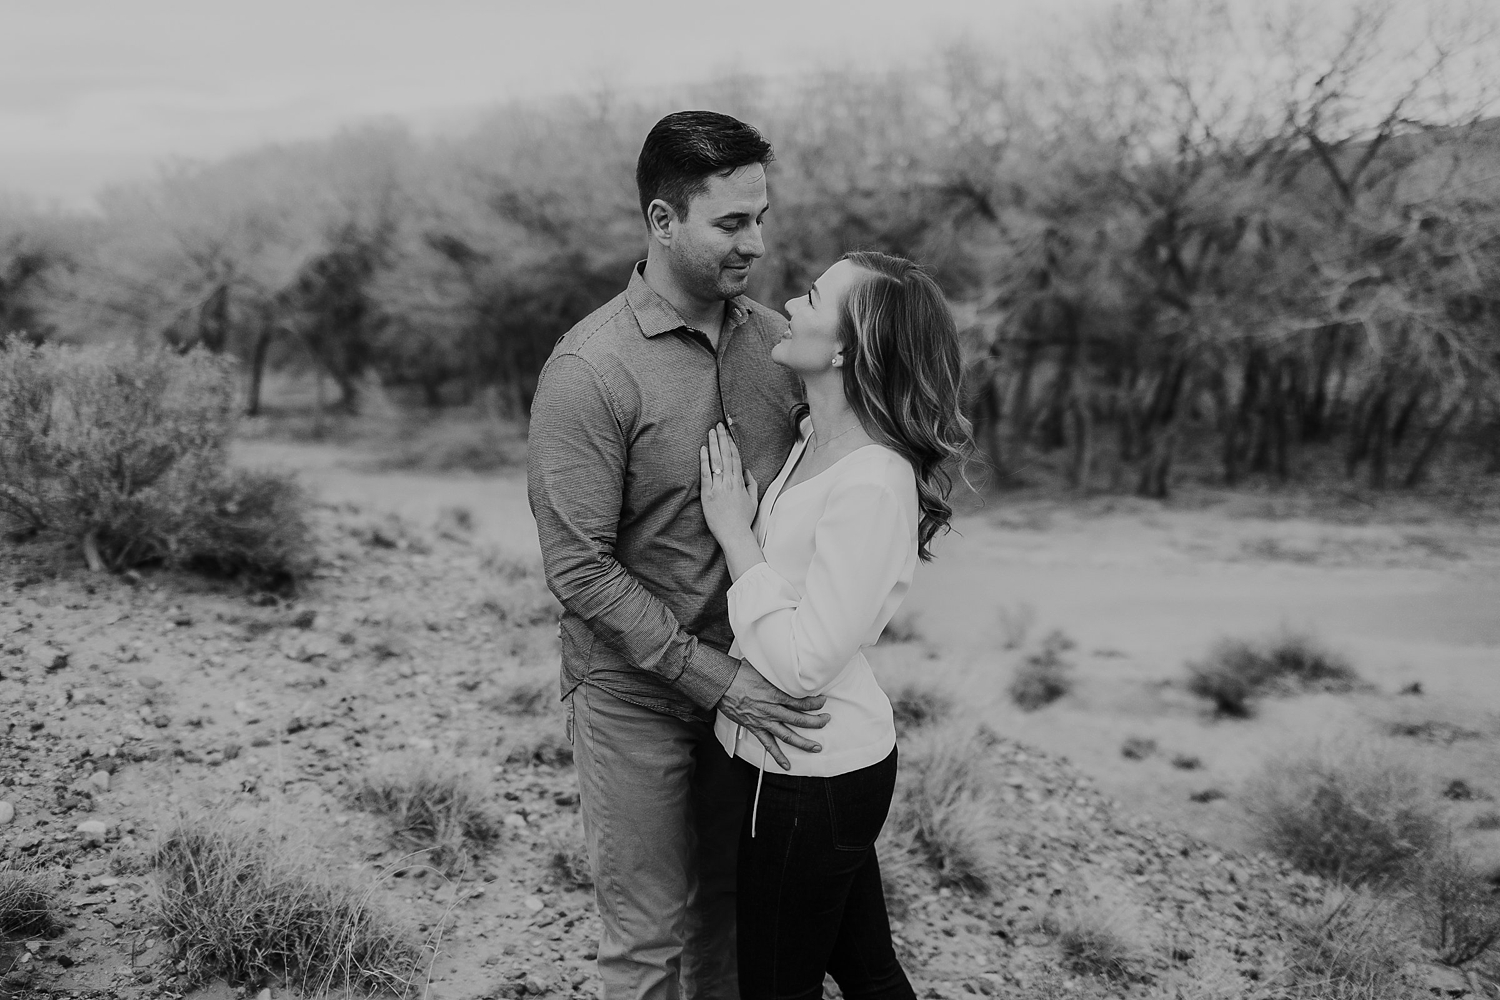 Alicia+lucia+photography+-+albuquerque+wedding+photographer+-+santa+fe+wedding+photography+-+new+mexico+wedding+photographer+-+new+mexico+engagement+-+albuquerque+engagement+-+spring+new+mexico+engagement+-+bosque+engagement_0007.jpg